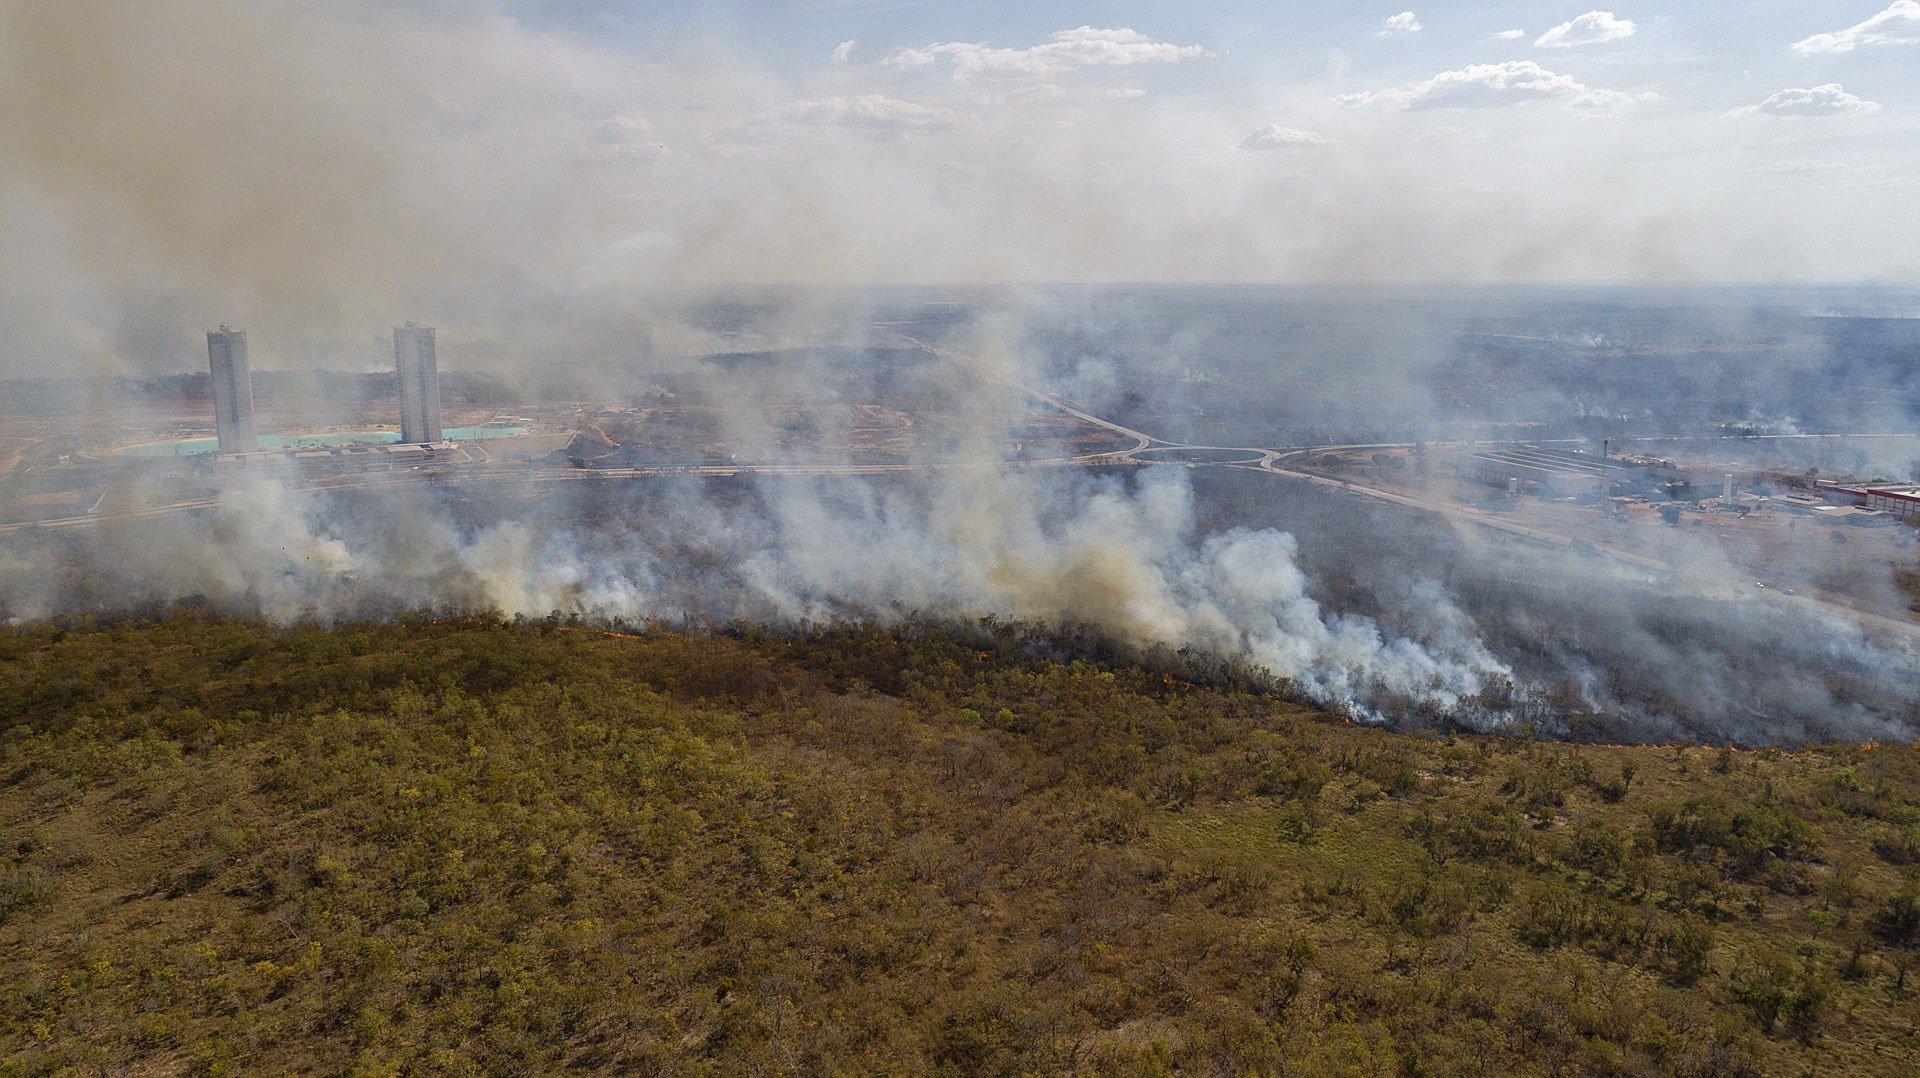 epa08604331 Aerial view of a forest fire near the city of Cuiaba, in the state of Mato Grosso, Brazil, 14 August 2020. The Brazilian Amazon, which is home to the largest tropical forest in the world, is on its way to close 2020 with a record of devastated area, after the so-called 'deforestation alerts' have grown by 33% in the year-on-year period that ended last July. The Brazilian Pantanal, a biodiversity sanctuary located in the southern Amazon, faces similar threats.  EPA/ROGERIO FLORENTINO